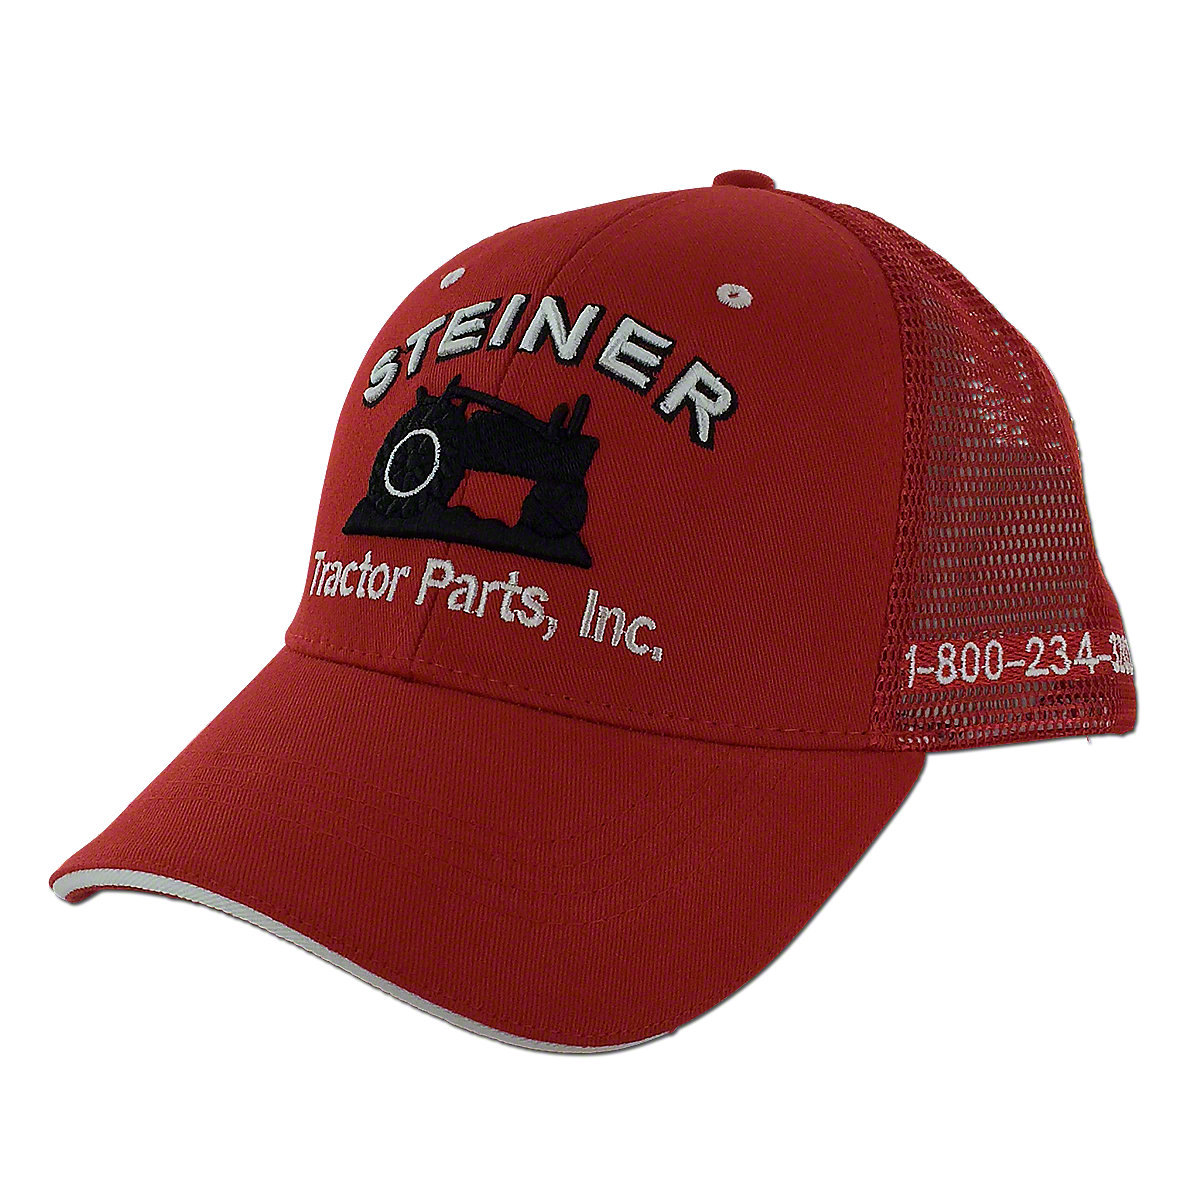 MIS126 Red Mesh Cap, Steiner Tractor Parts, Inc. Baseball Hat